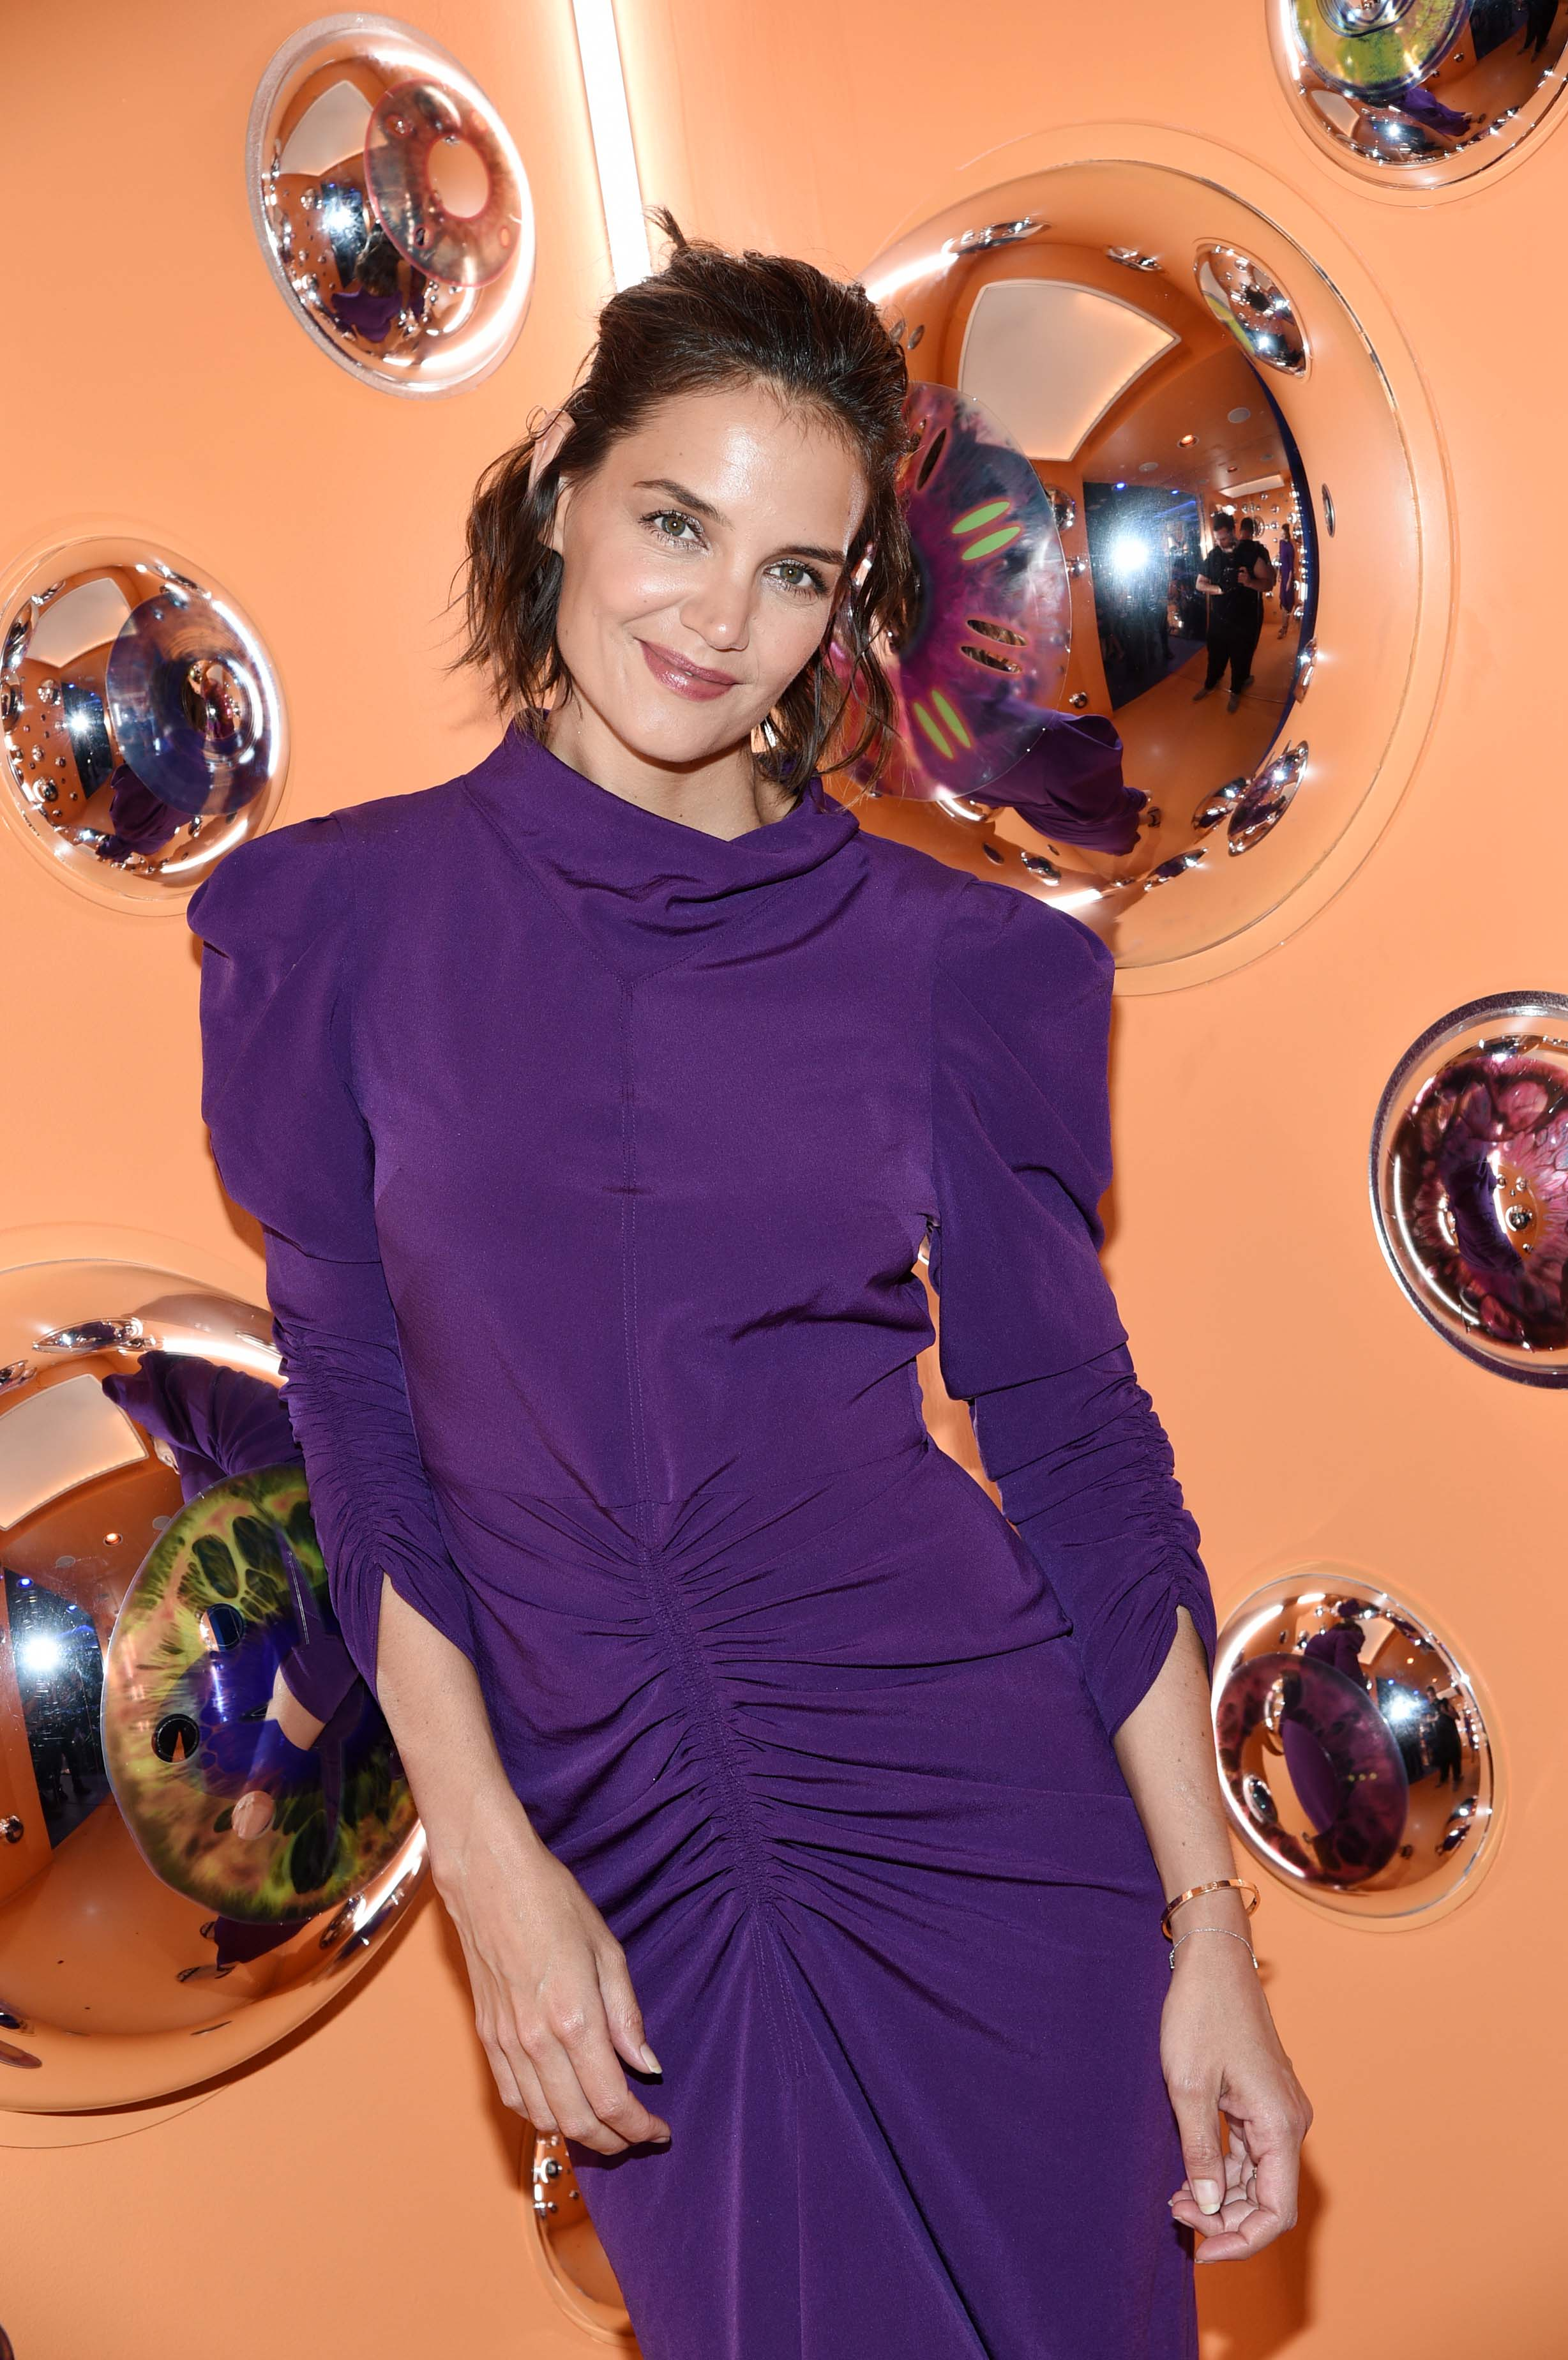 katie-holmes-a-human-experience-exhibit-in-nyc-9418